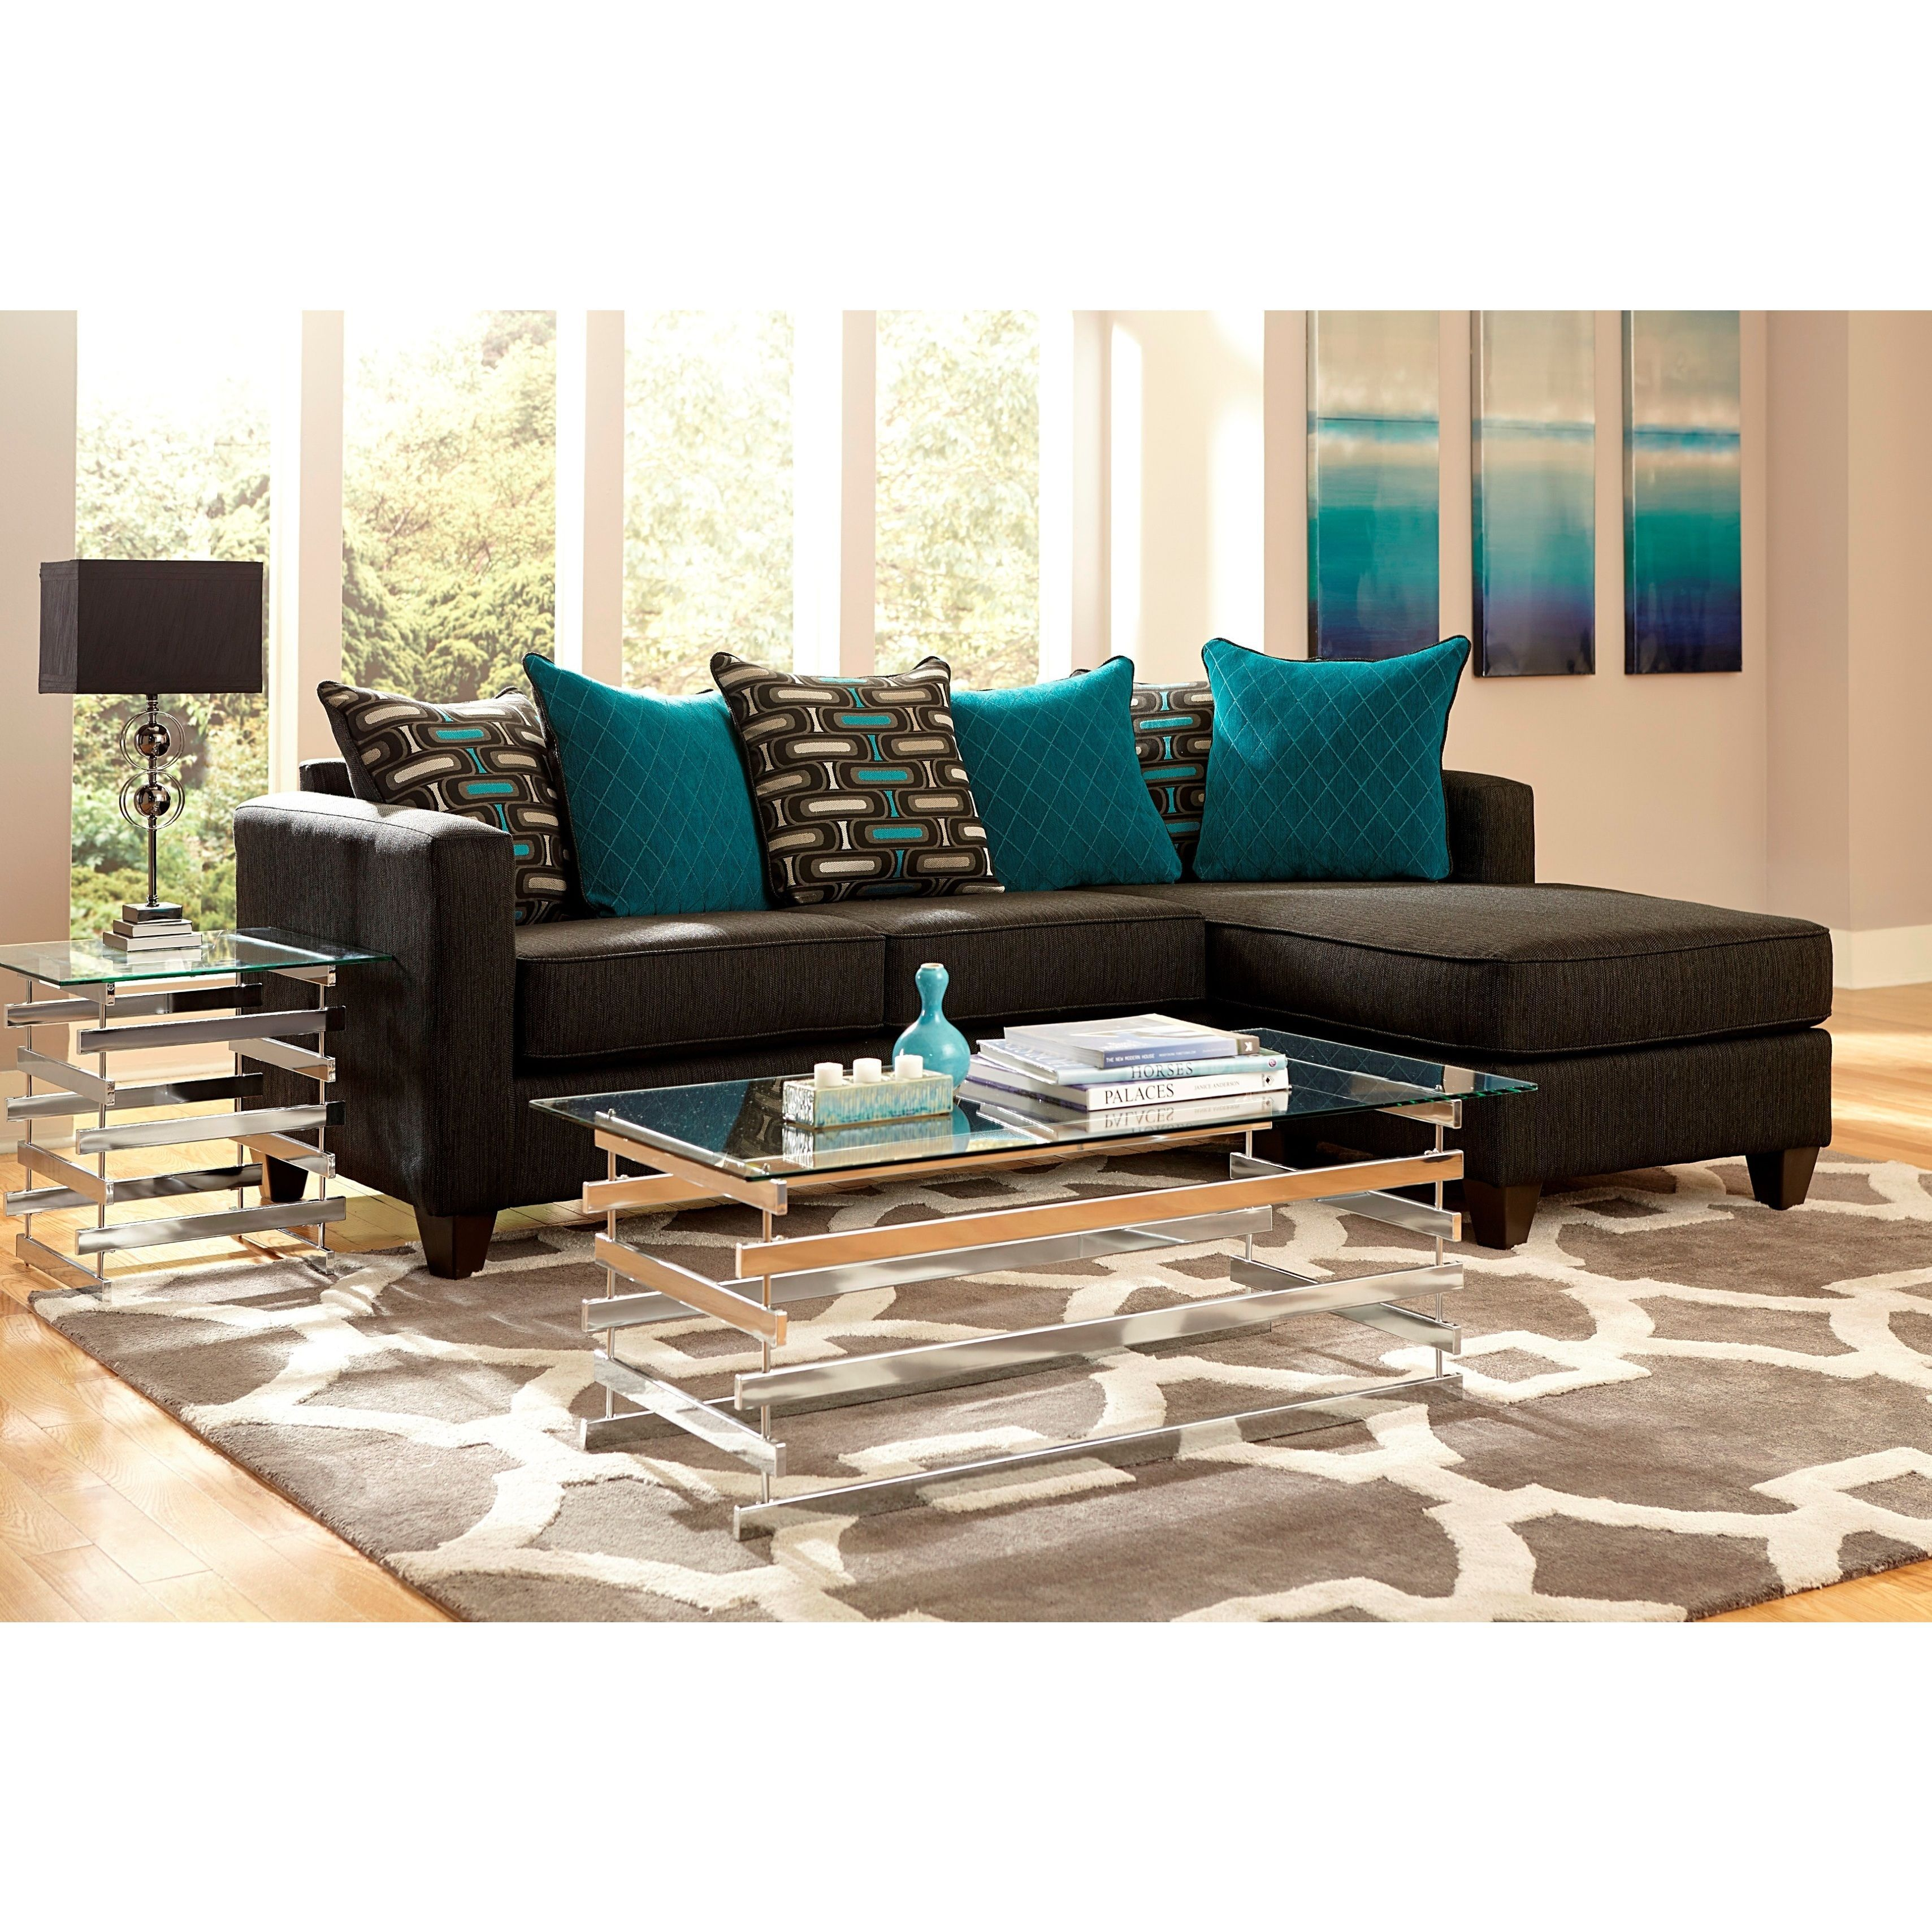 Upholstered In A Charcoal Black Chenille Fabric This 2